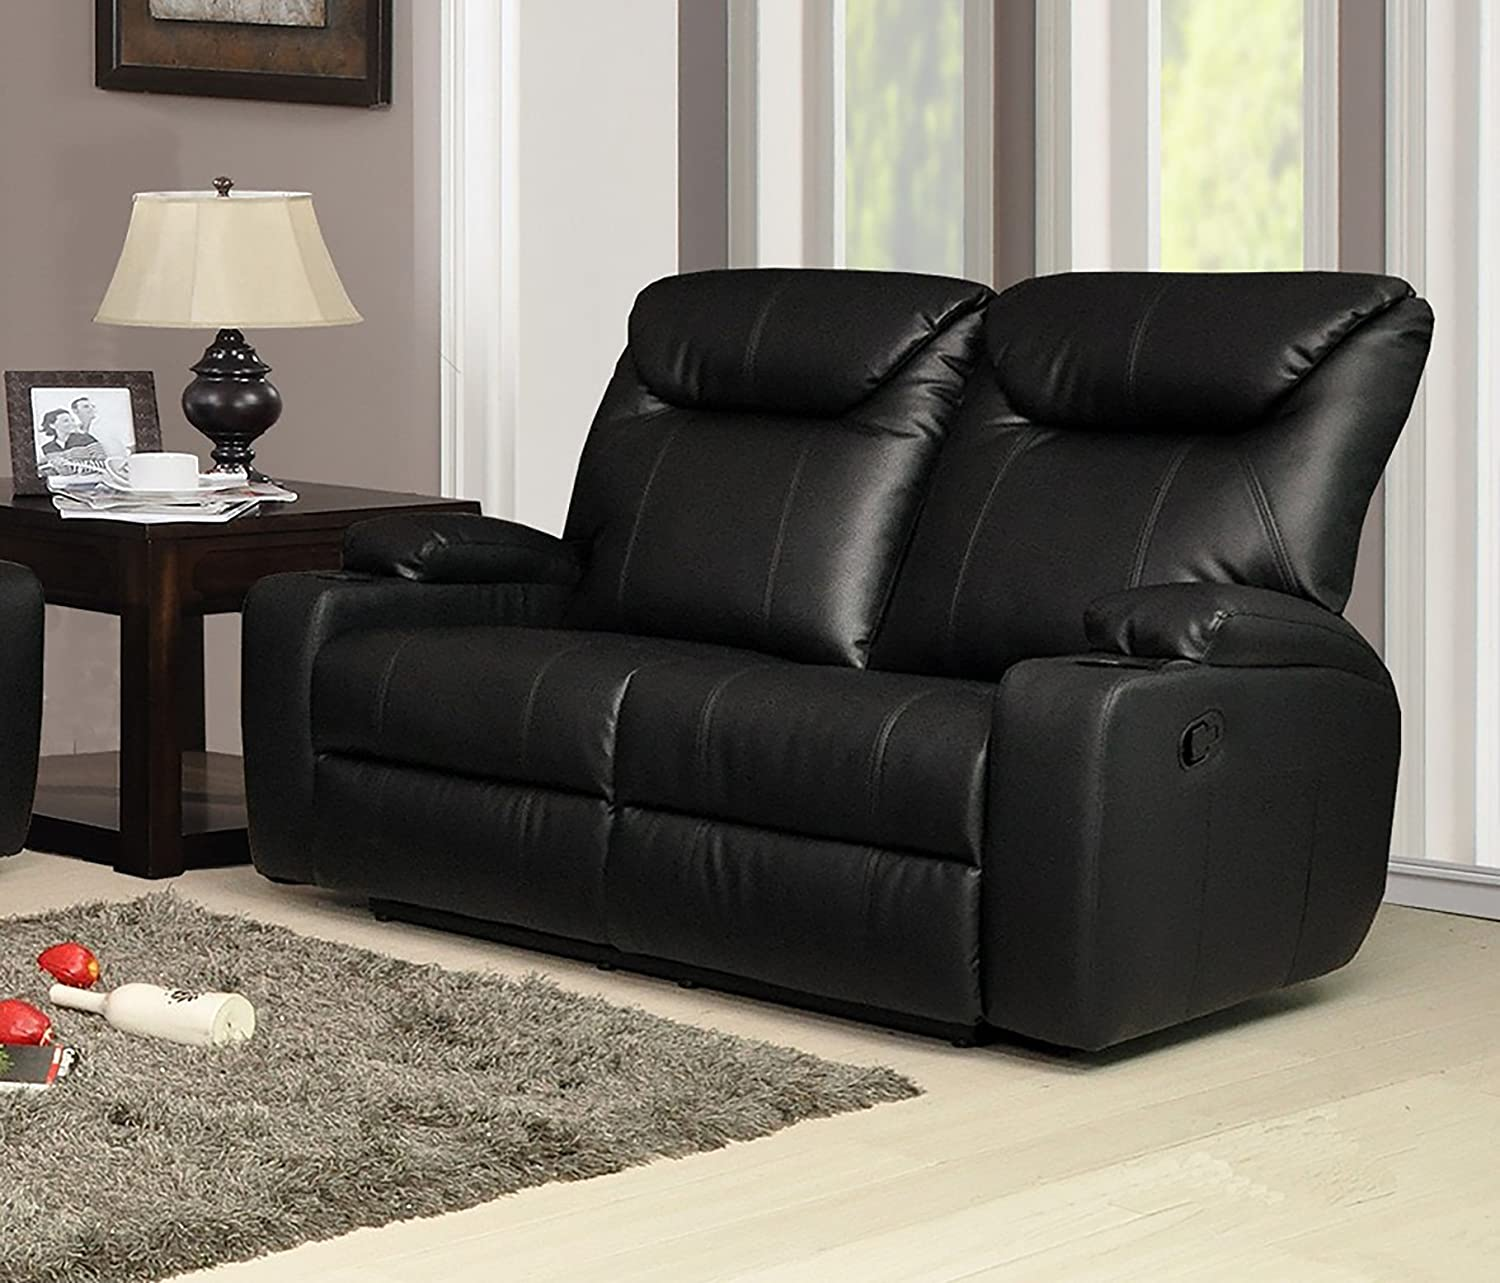 Lovesofas New Luxury Cinema Lazy Boy 2 Seater Bonded Leather